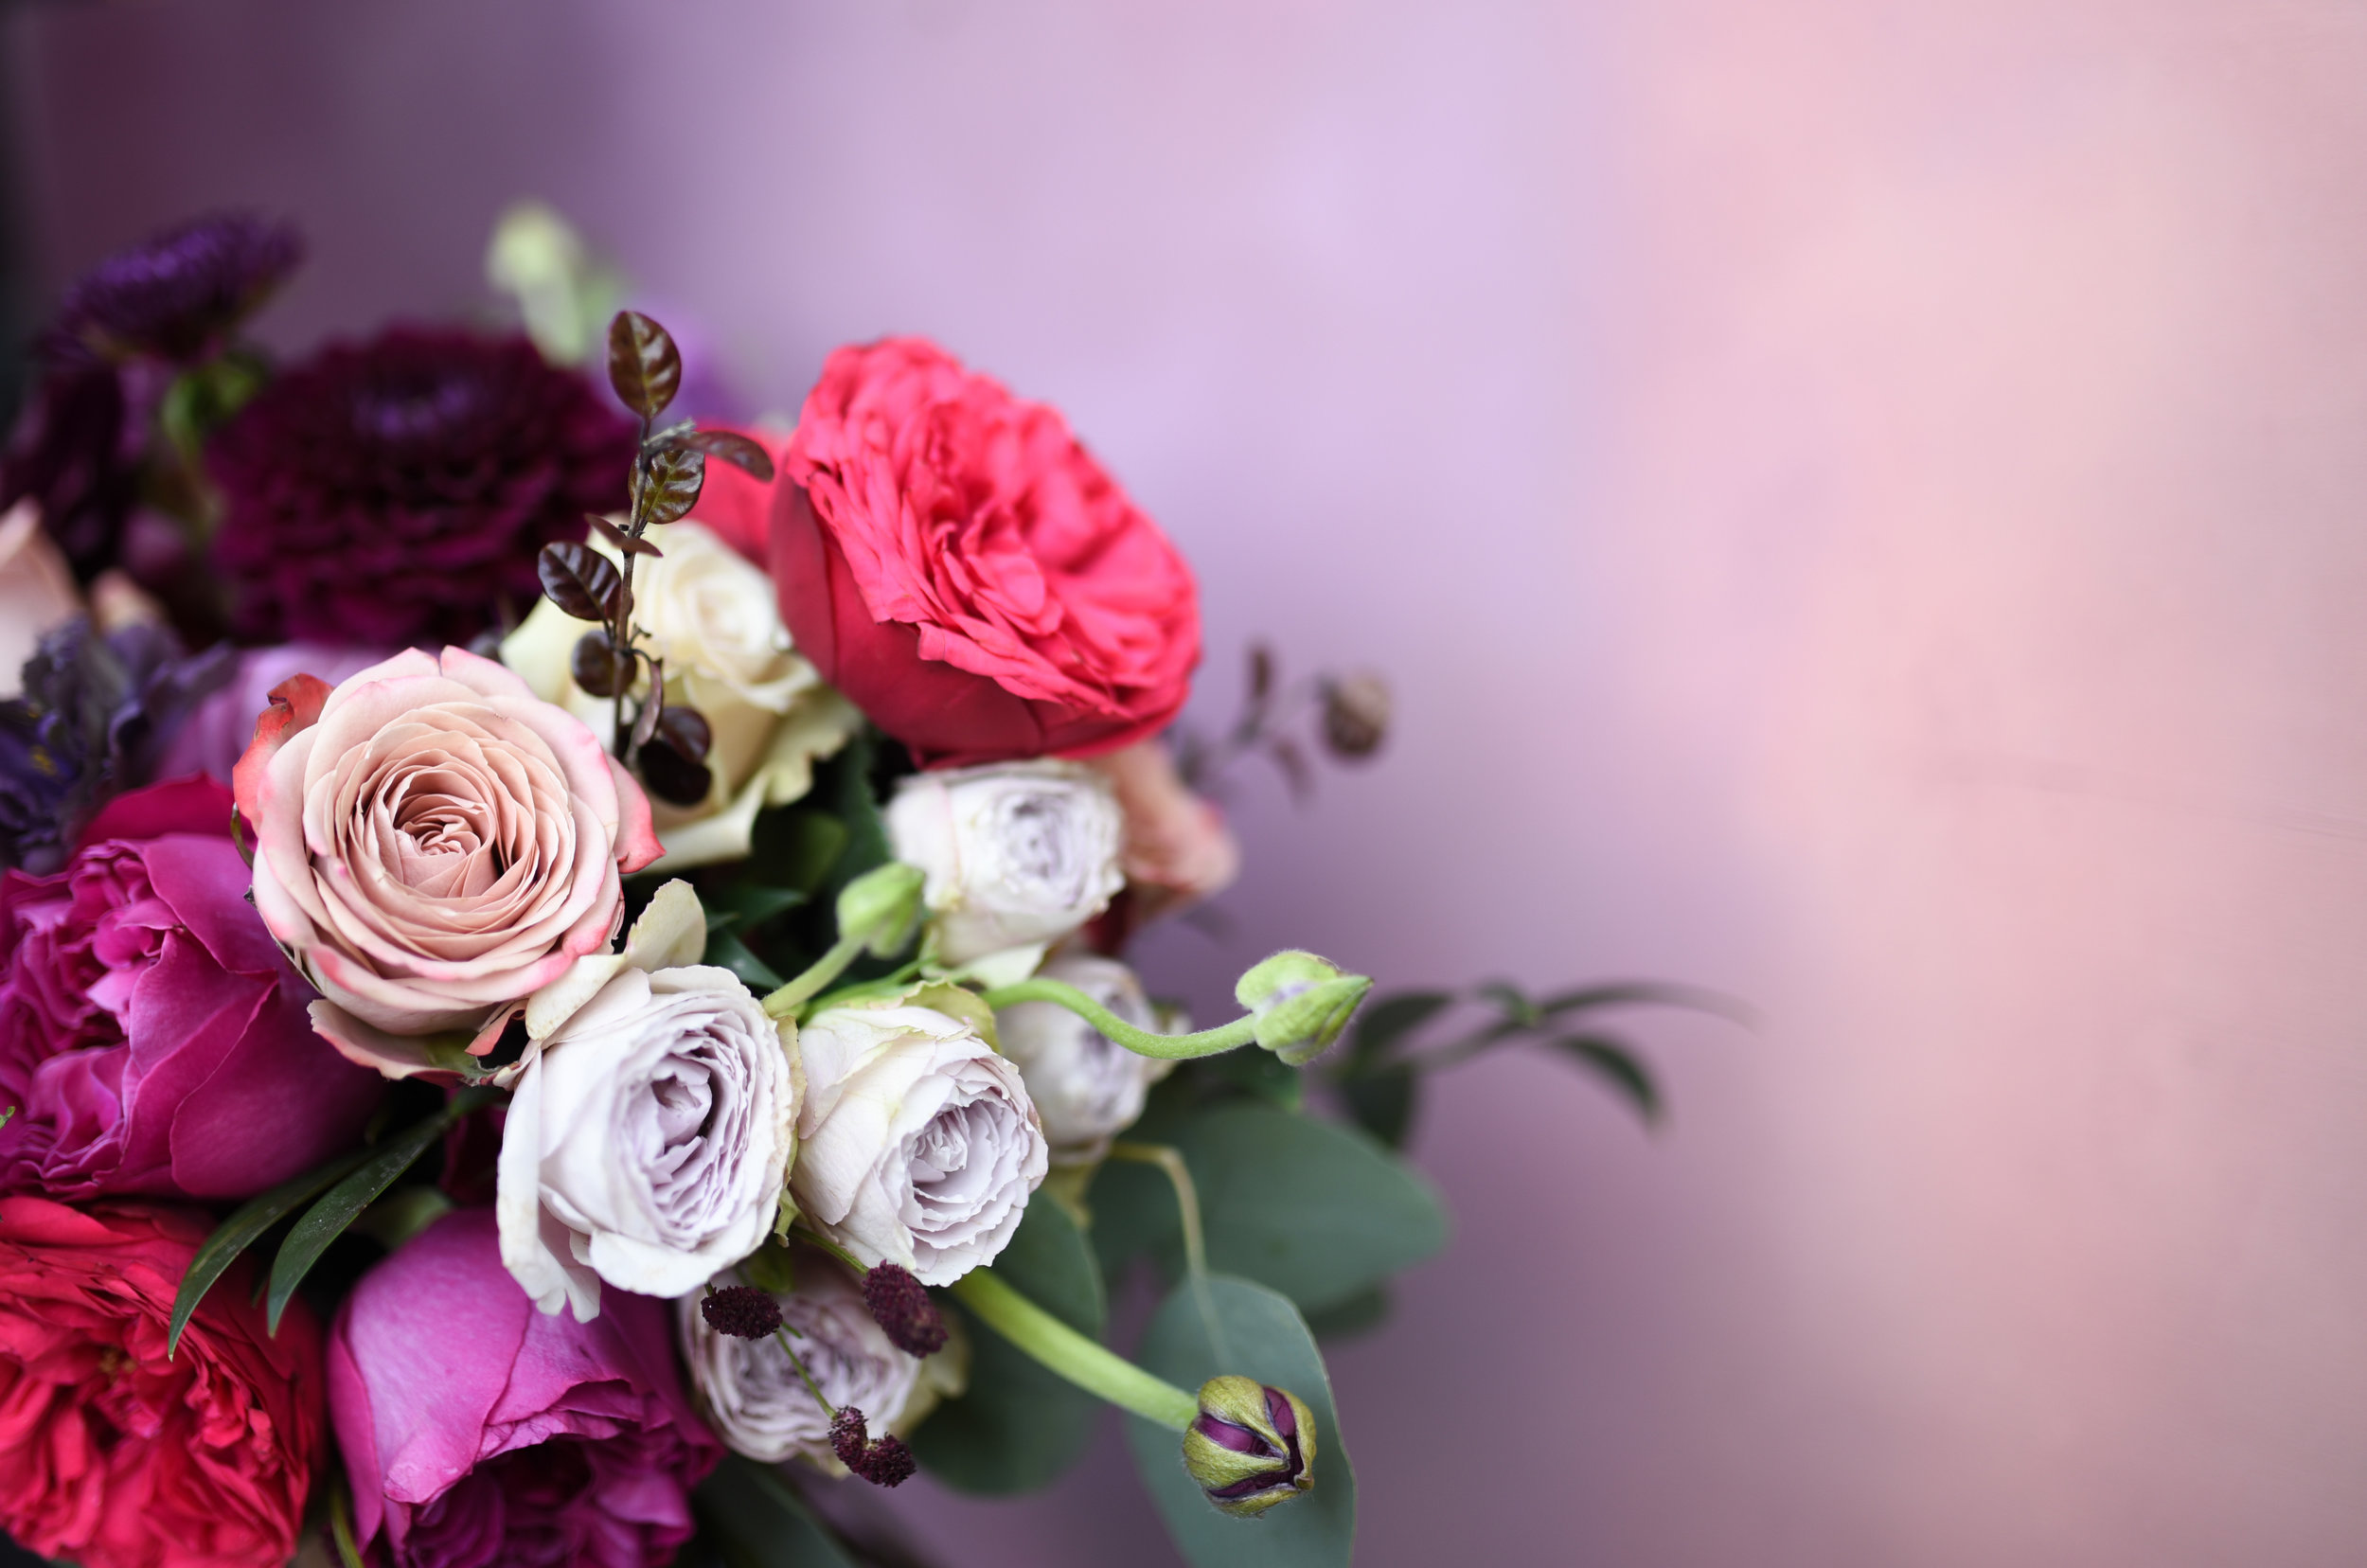 A close shot of this beautiful, natural hand tied bouquet